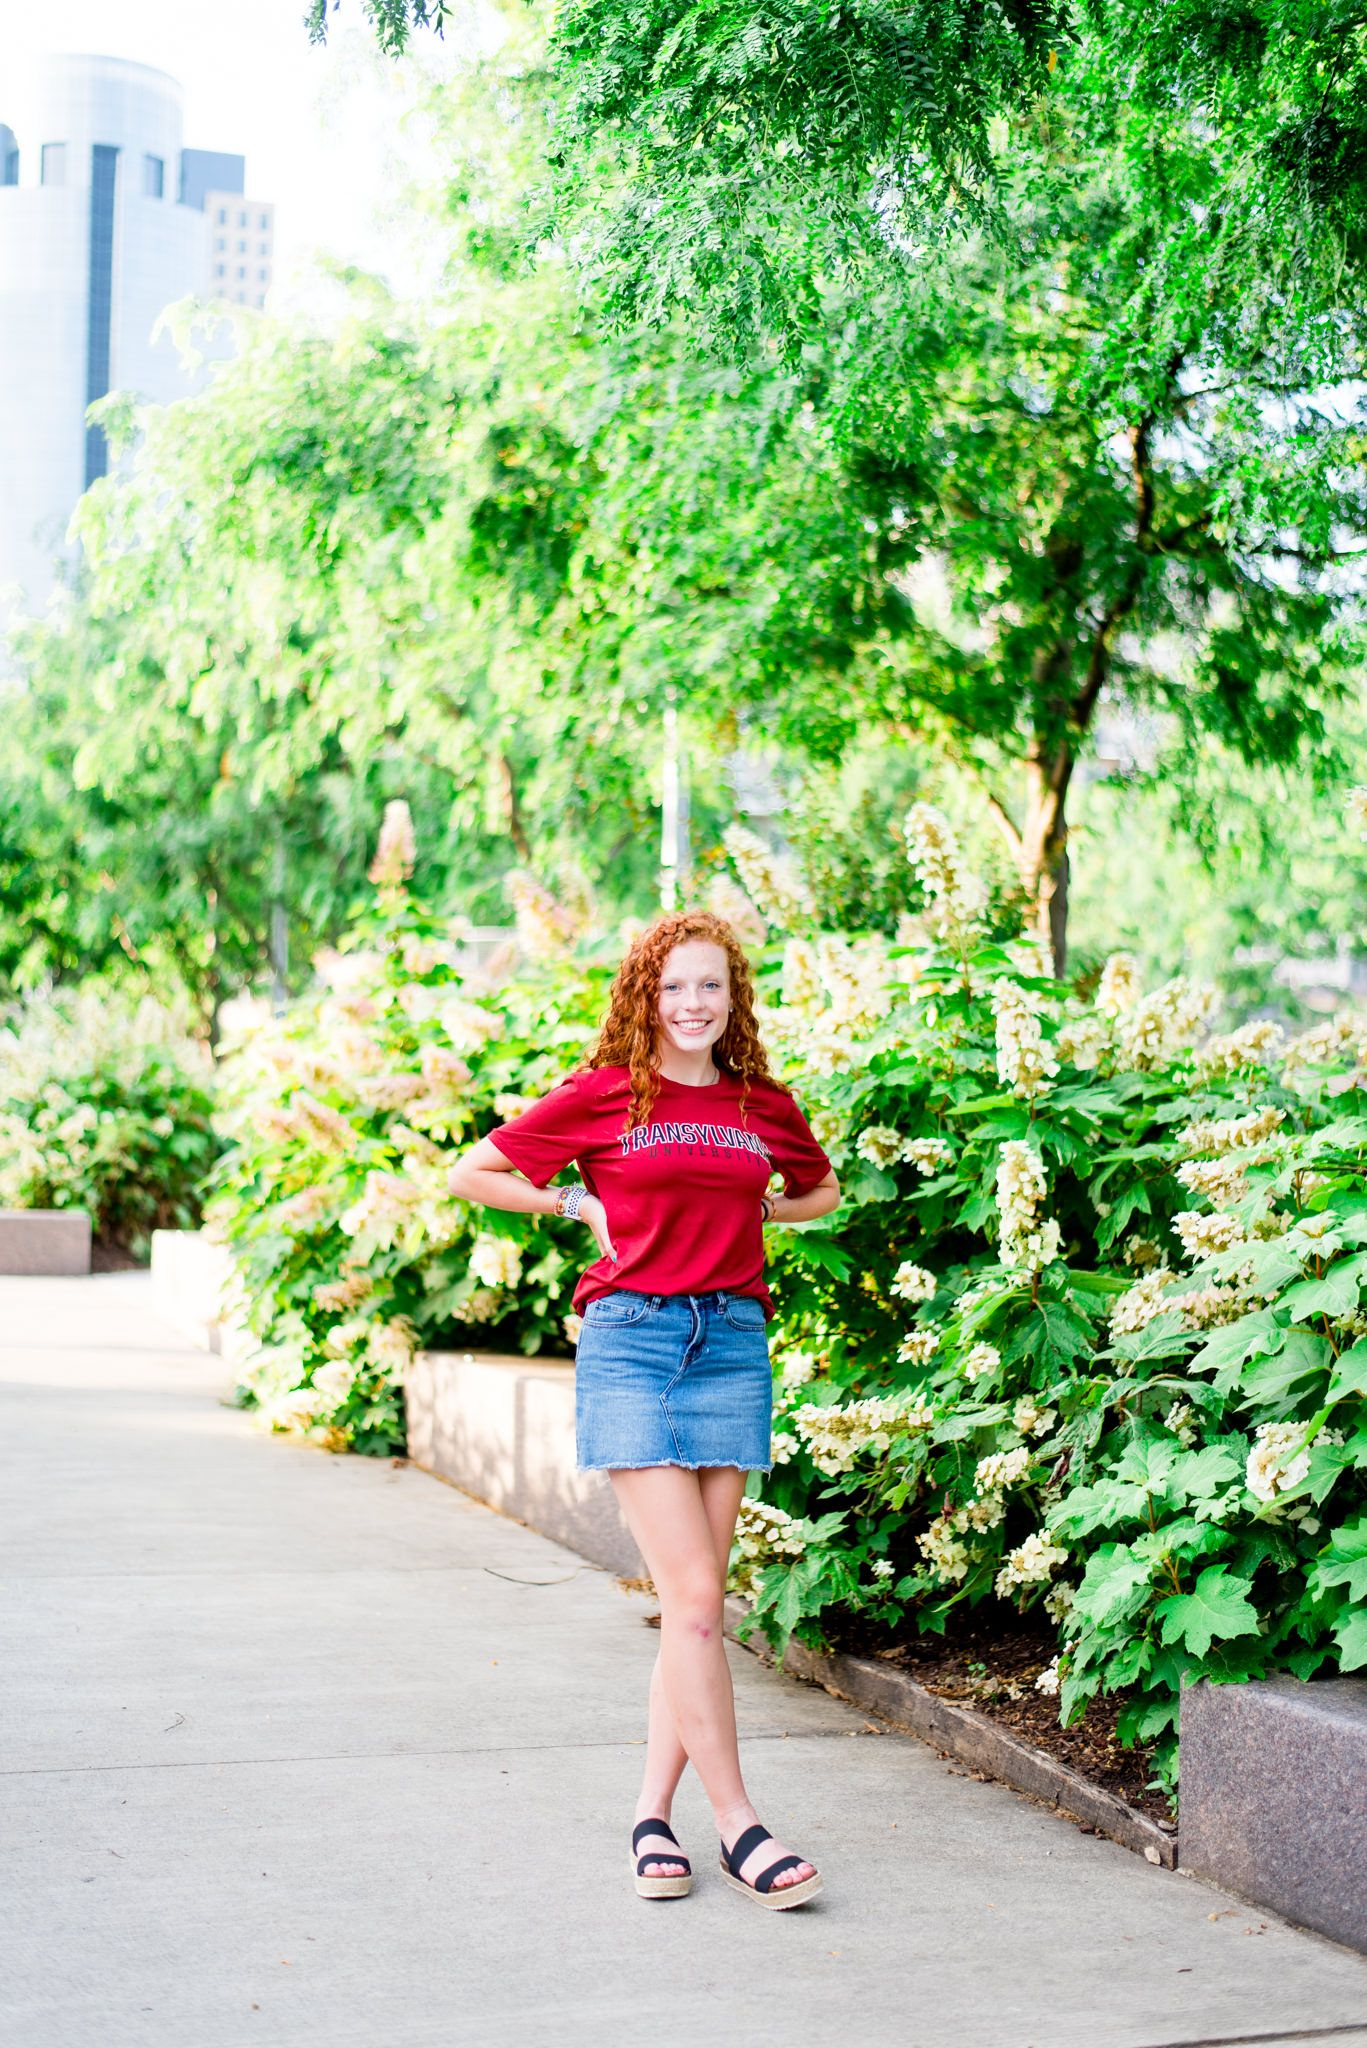 young woman with red curly hair in red Transylvania shirt and denim skirt walking through Smale Park hydrangeas